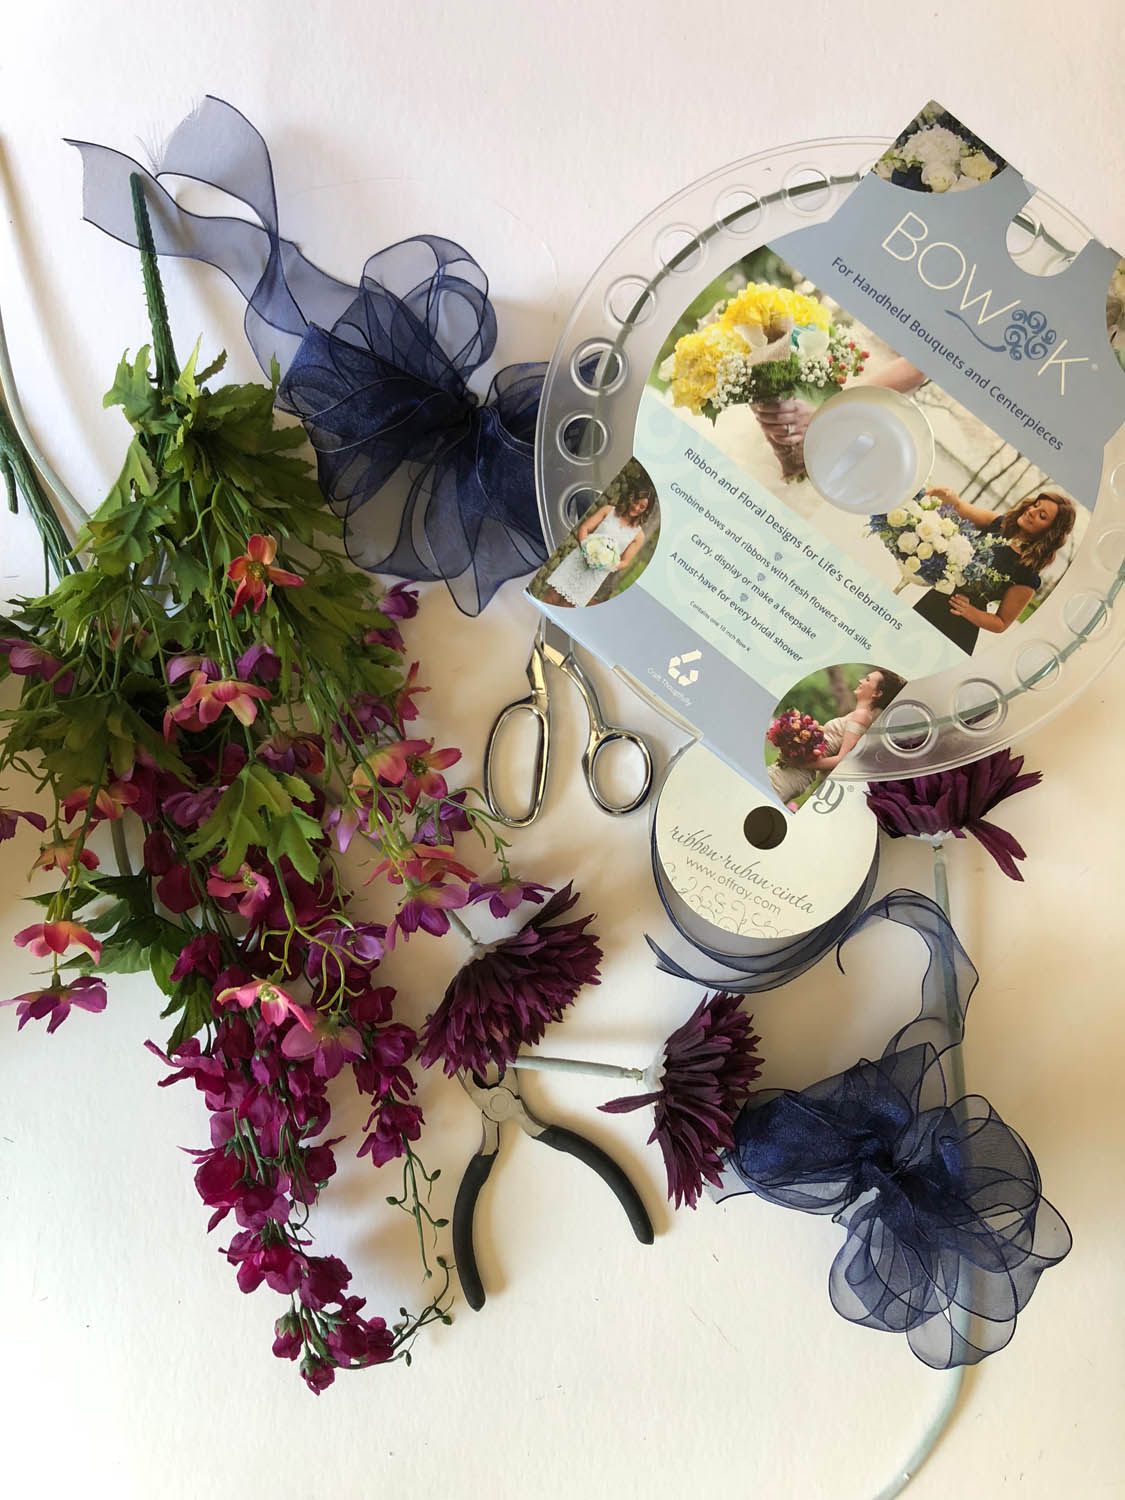 supplies to make simple centerpiece arrangements with ribbons and flowers